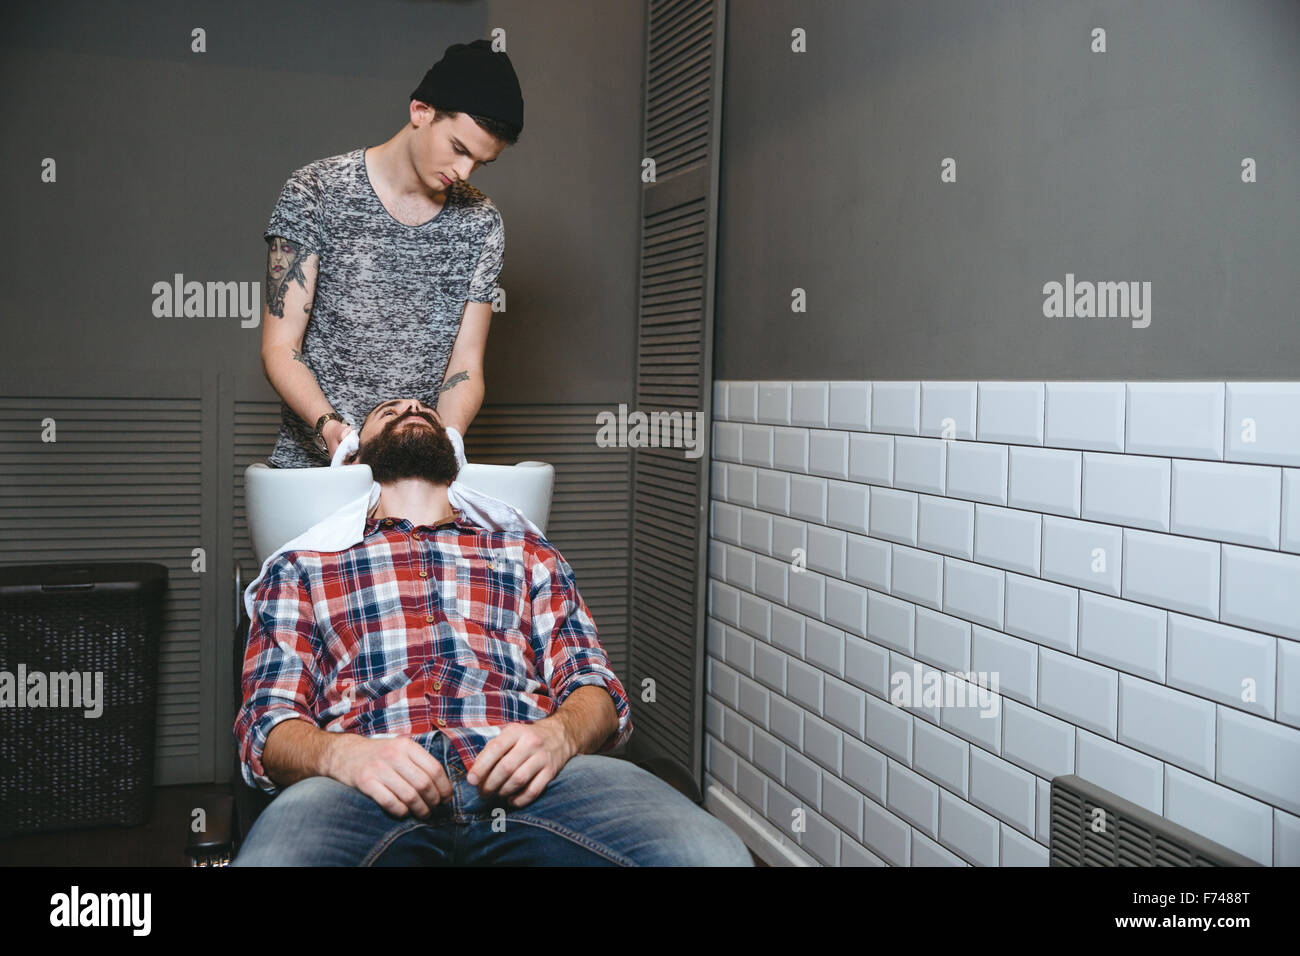 Young handsome barber with tatoo in black hat washing hair of client with beard in plaid shirt and jeans in barbershop - Stock Image